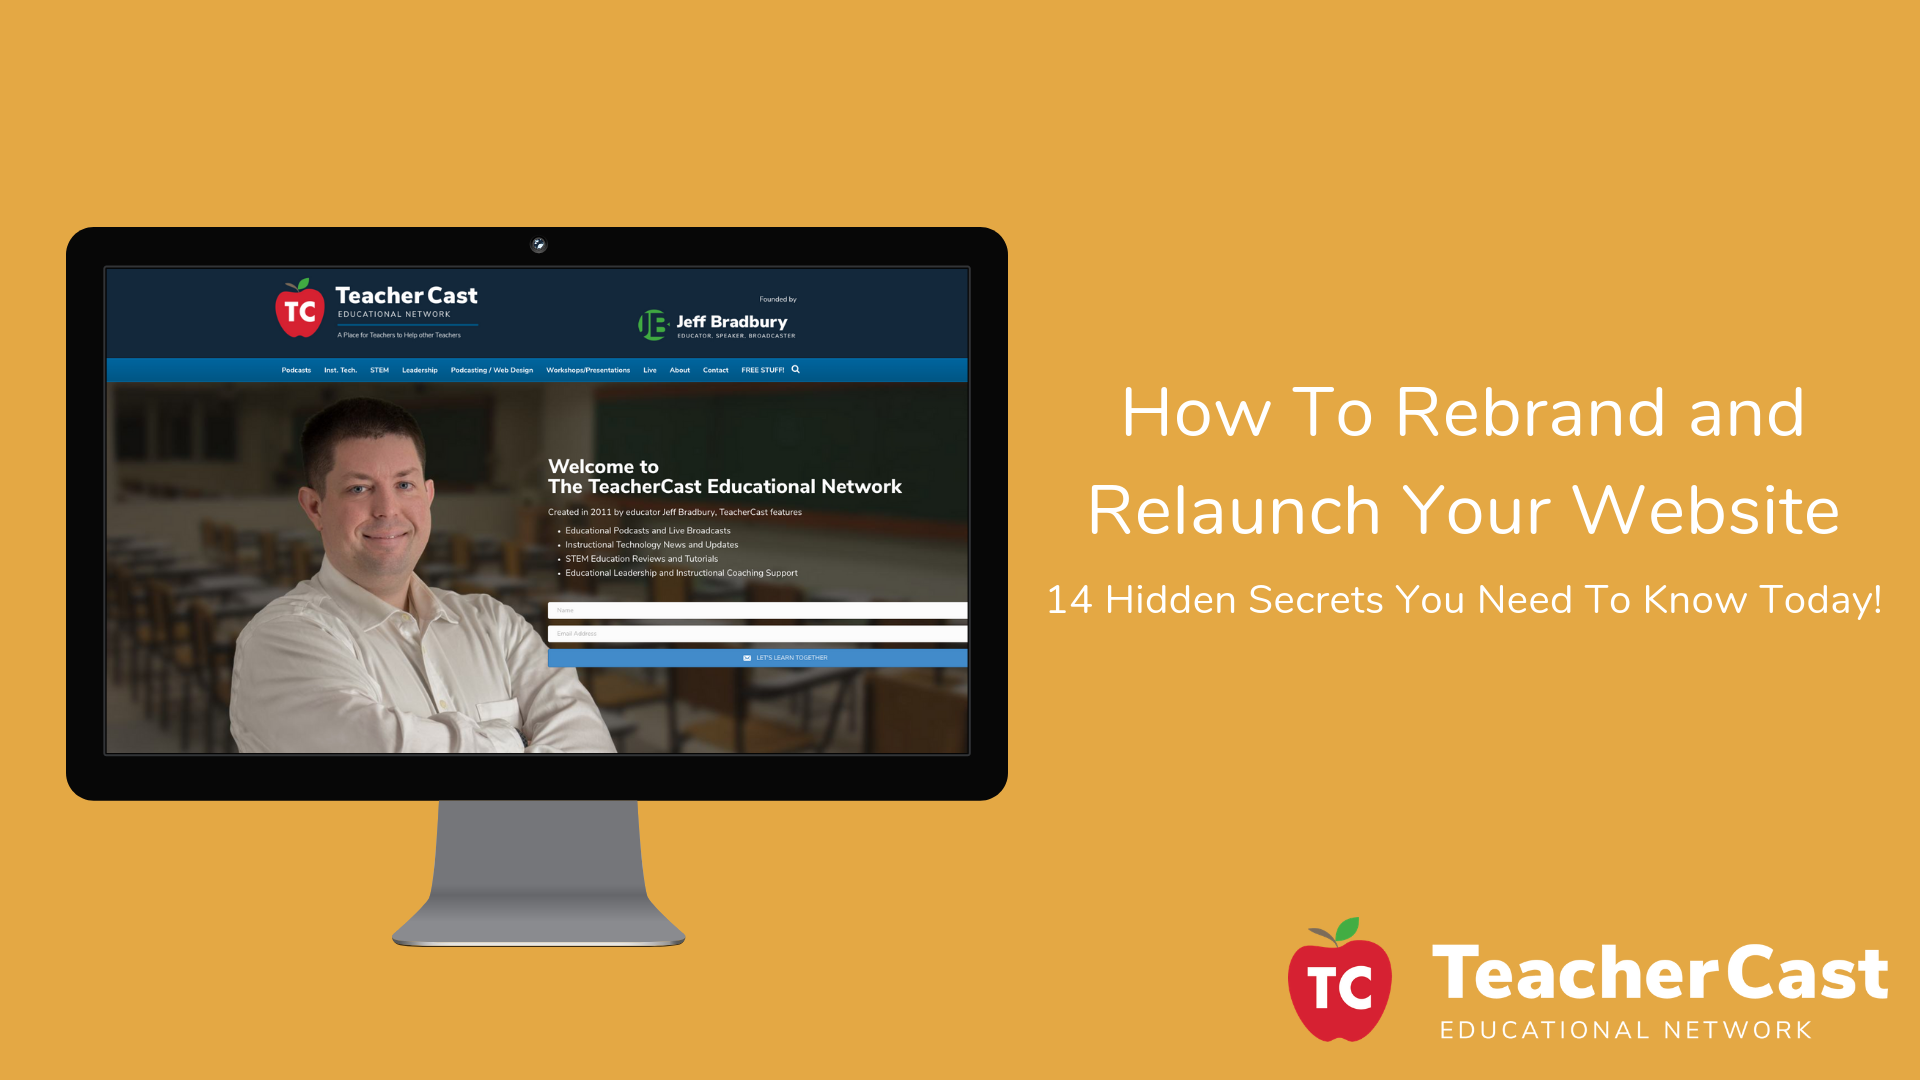 How To Rebrand and Relaunch Your Website